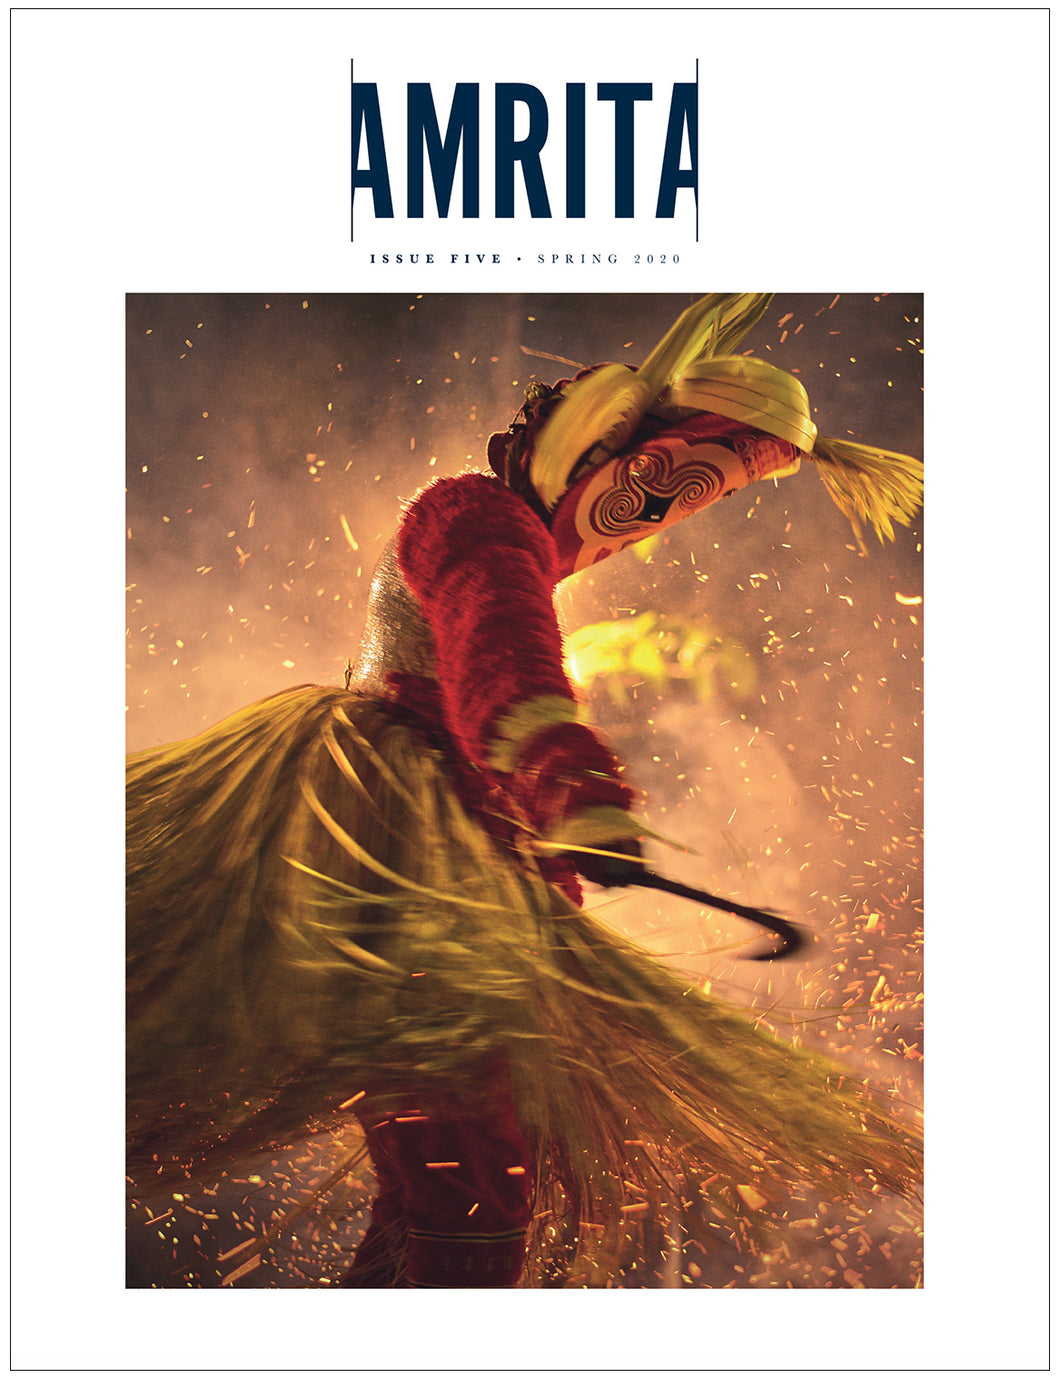 Digital AMRITA Magazine - Issue 5